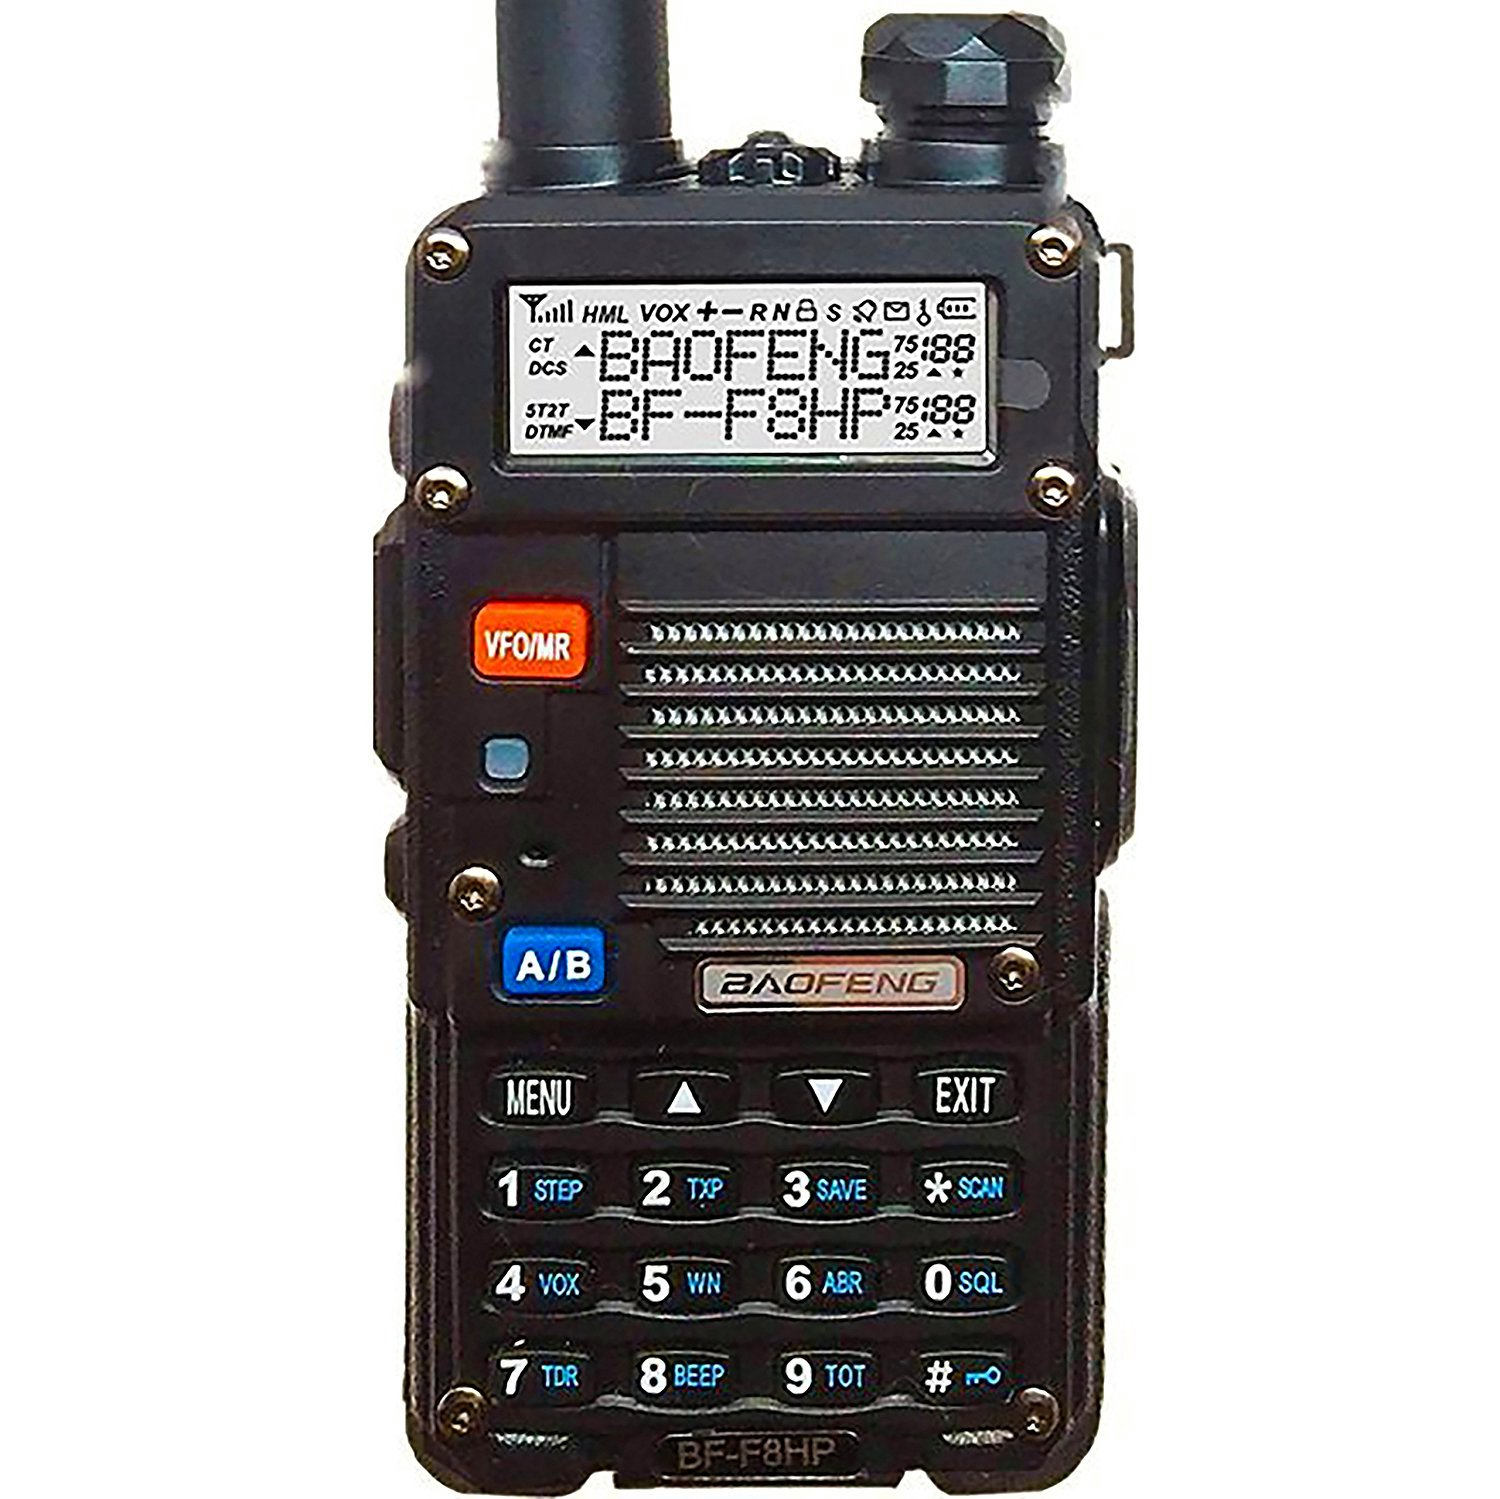 BF-F8HP (UV-5R 3rd Gen) 8-Watt Dual Band Two-Way Radio (136-174MHz VHF & 400-520MHz UHF) Includes Full Kit with Large Battery by flyingus